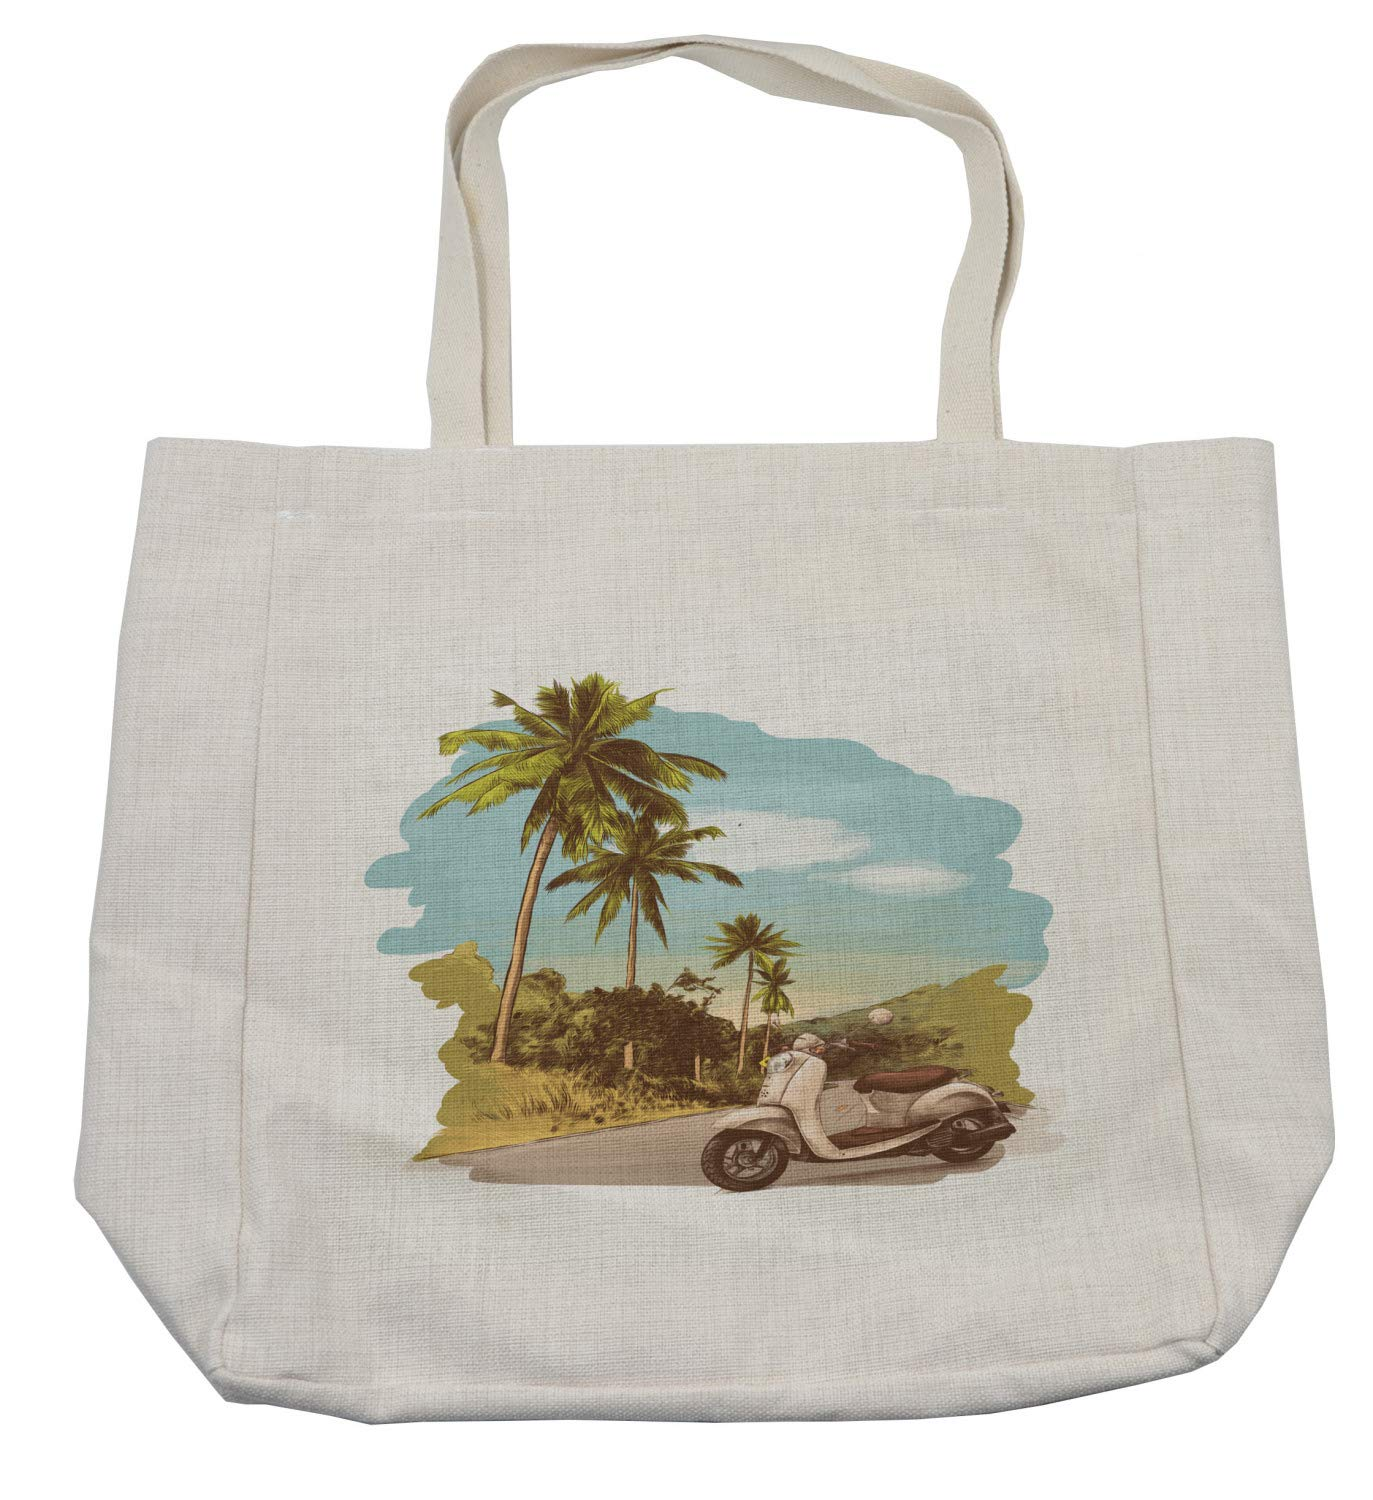 Ambesonne Retro Shopping Bag, Faded Effect Vintage Scooter Stands on the Road Jungle with Palm Trees on the Edges, Eco-Friendly Reusable Bag for Groceries Beach and More, 15.5'' X 14.5'', Cream by Ambesonne